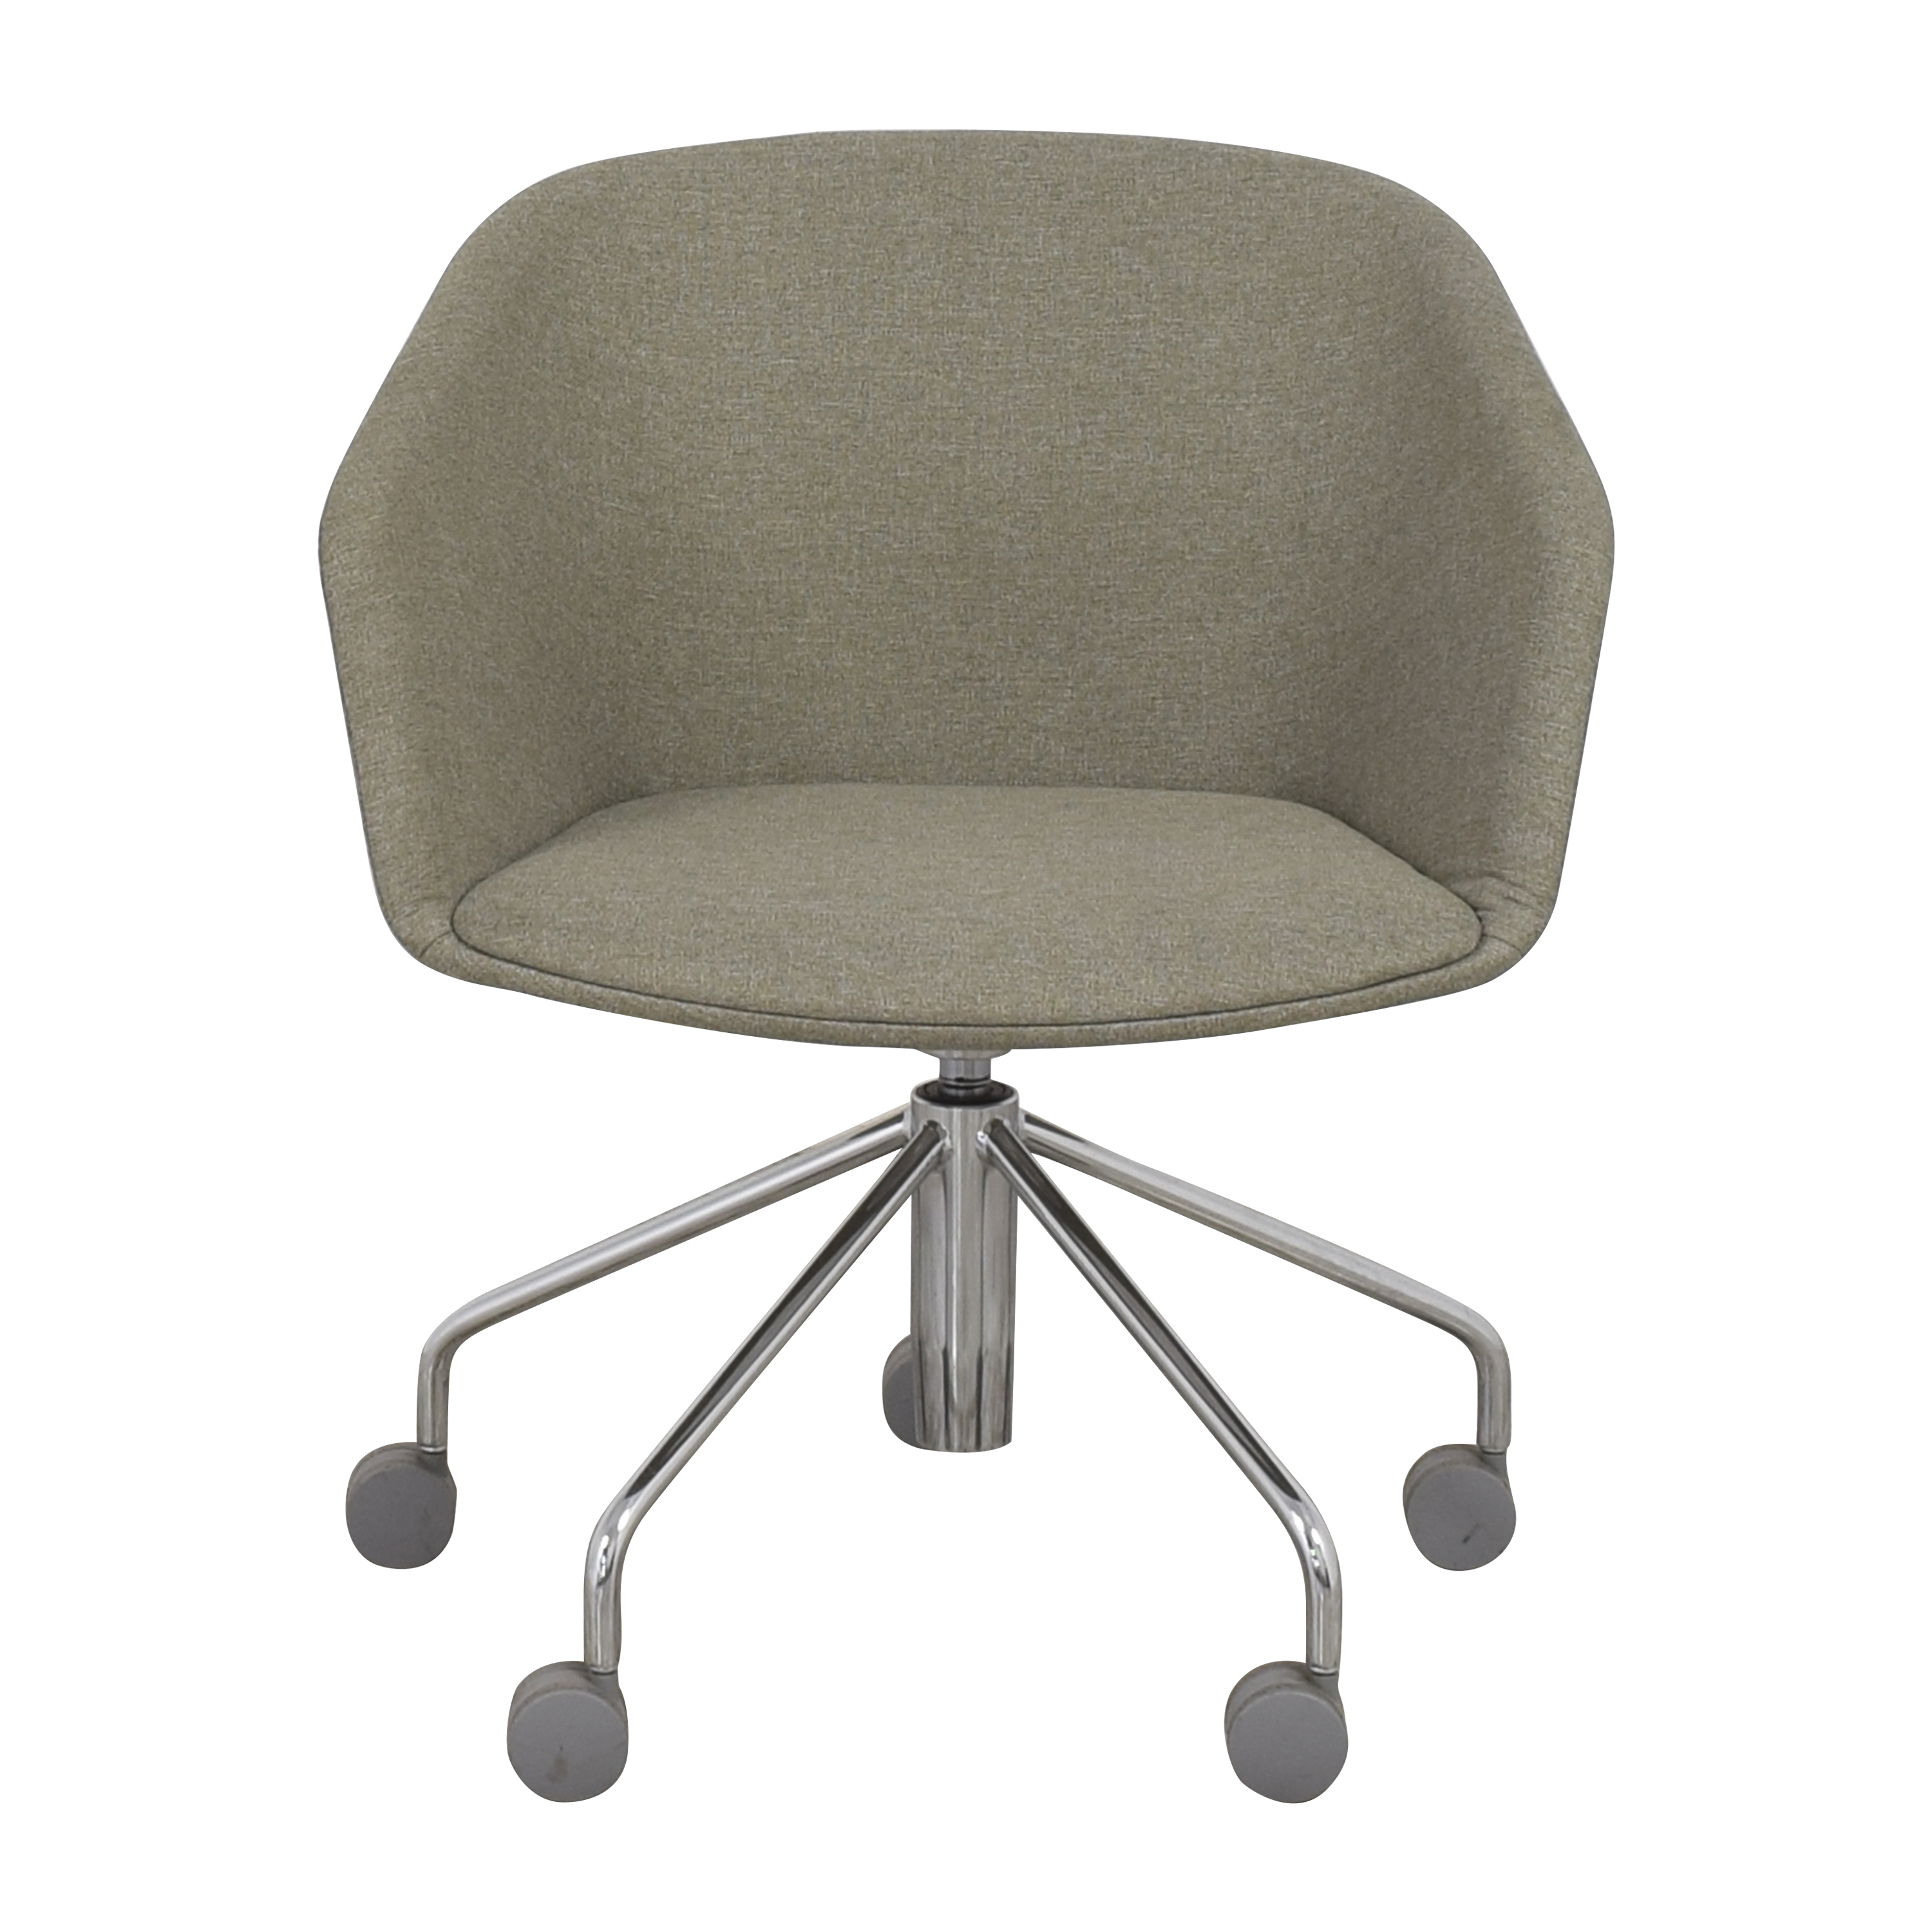 buy Poppin Pitch Meeting Chair Poppin Chairs